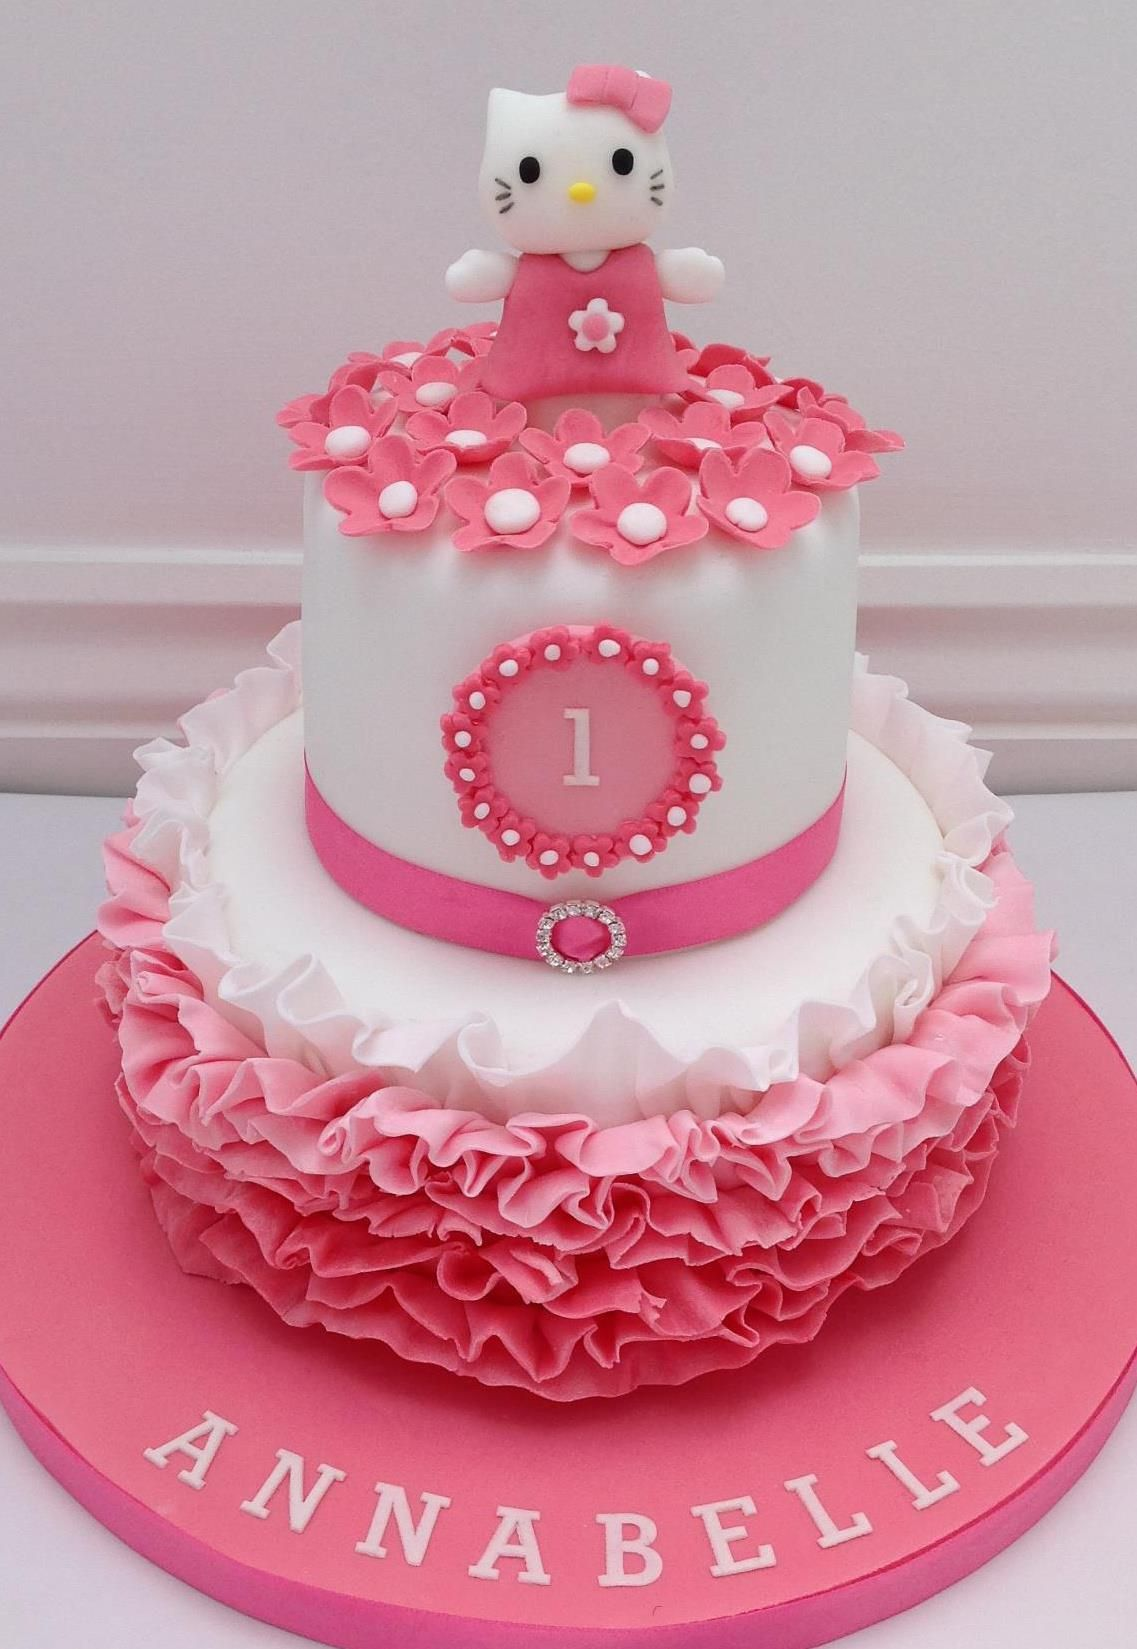 A Hello Kitty Pink Ombre Ruffles Cake by Fancy Fondant ...